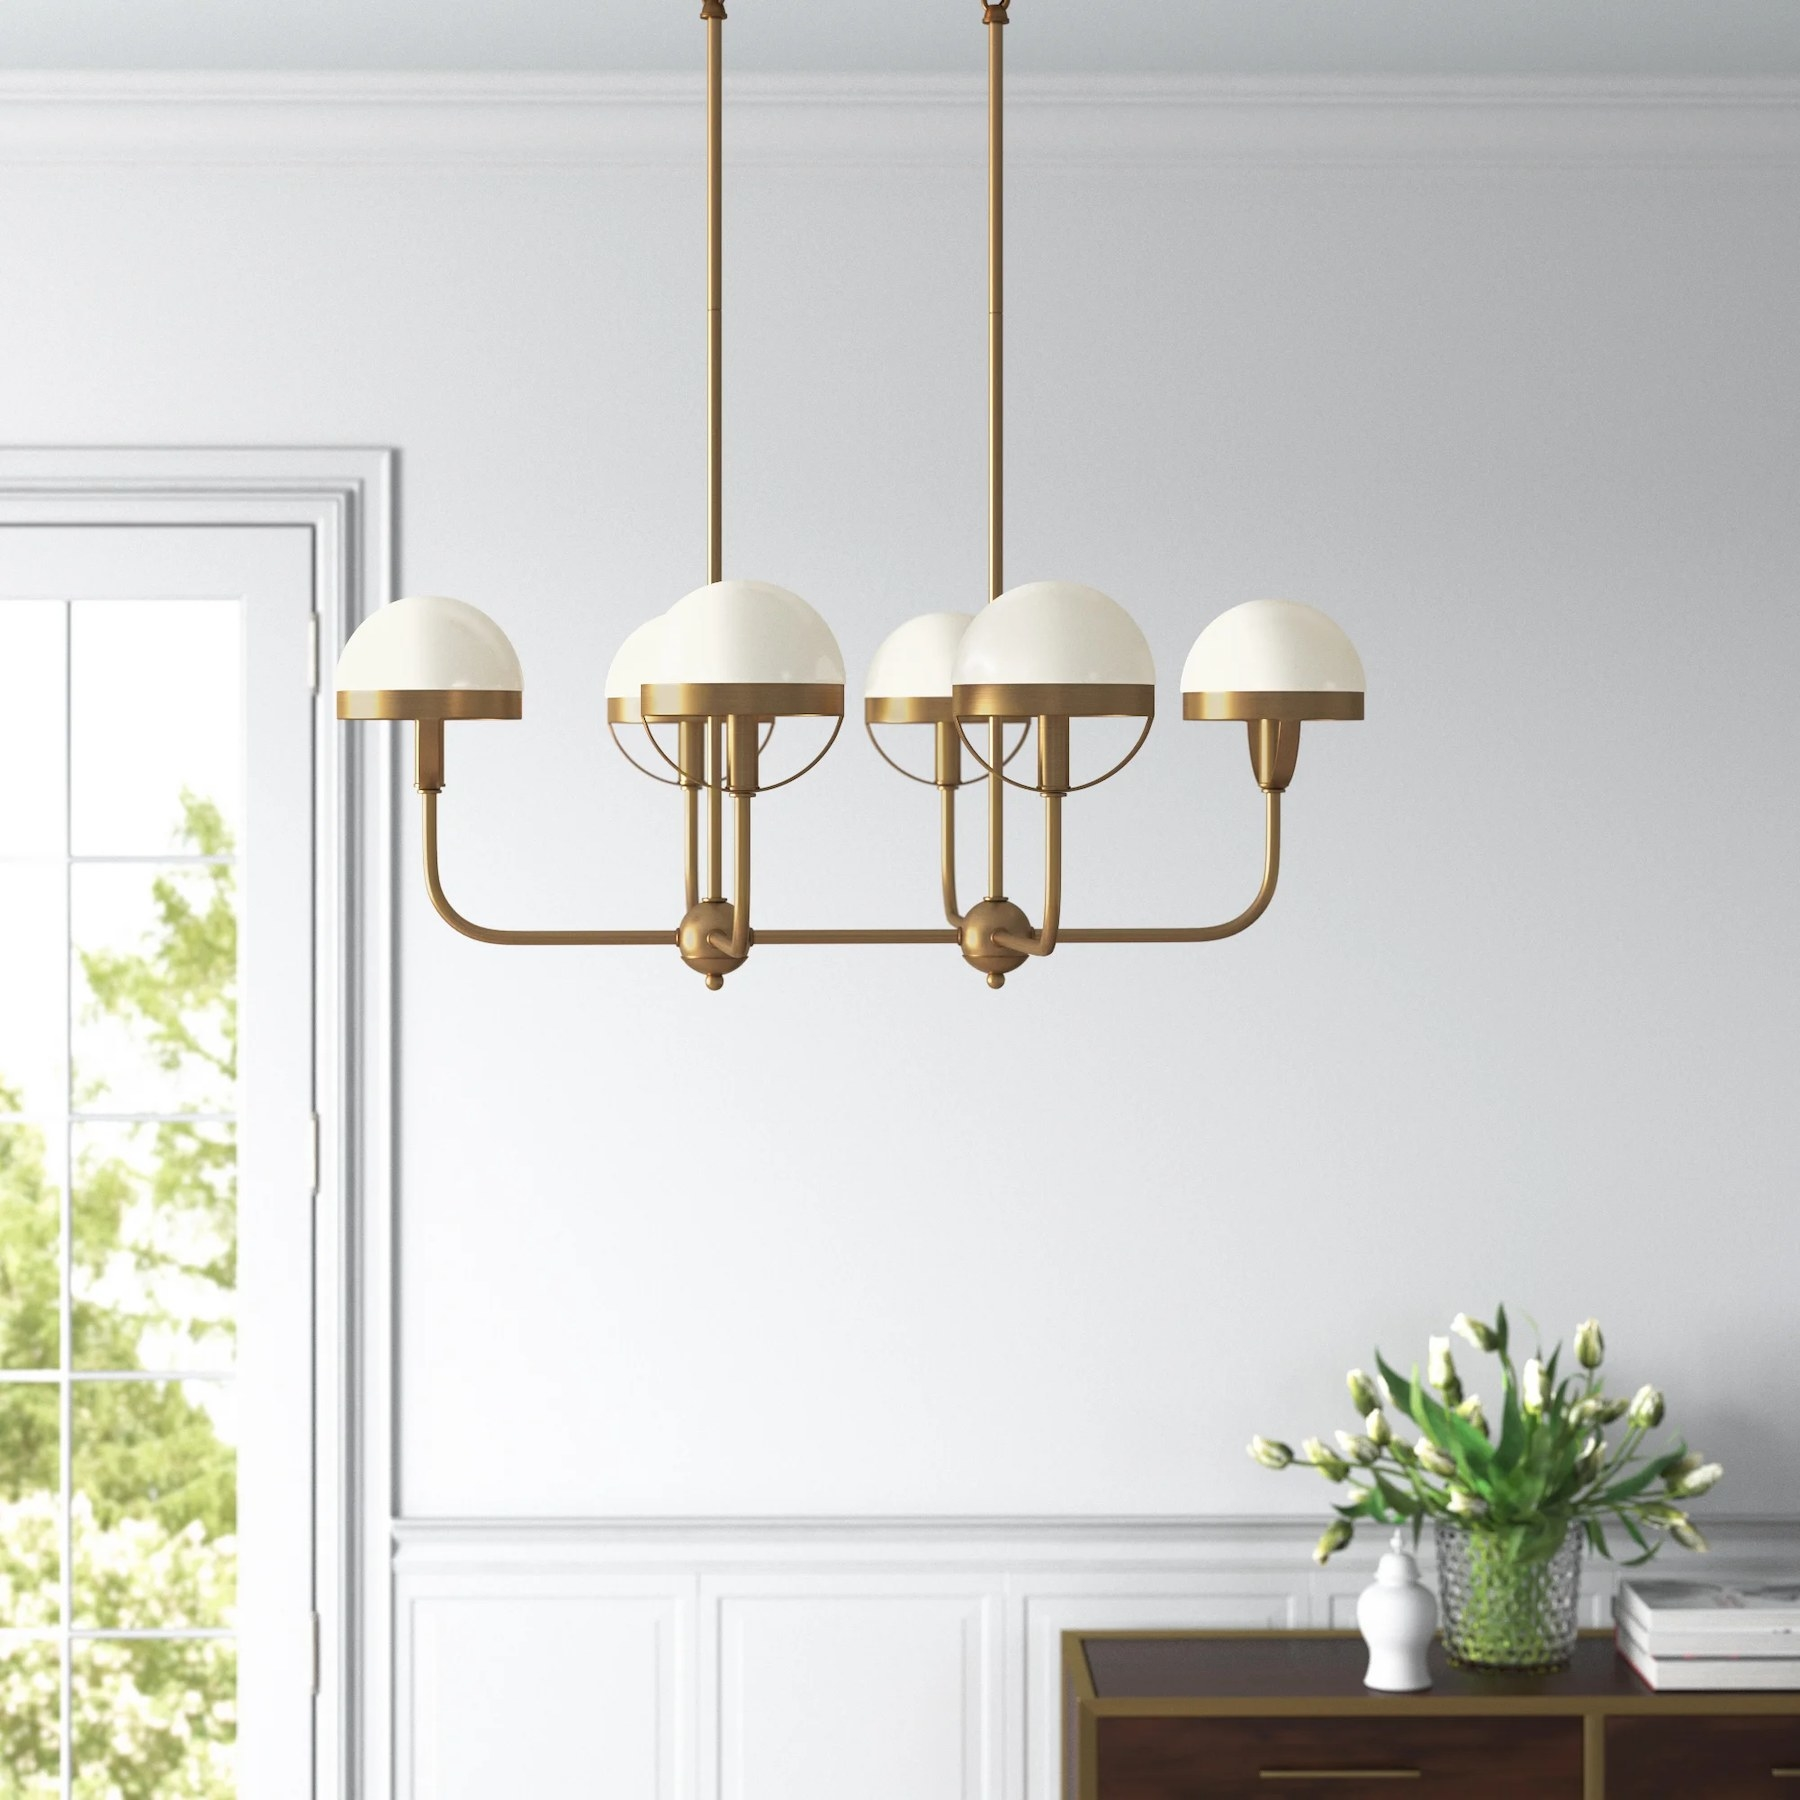 The pendant with six individual circular lights hanging in a living room